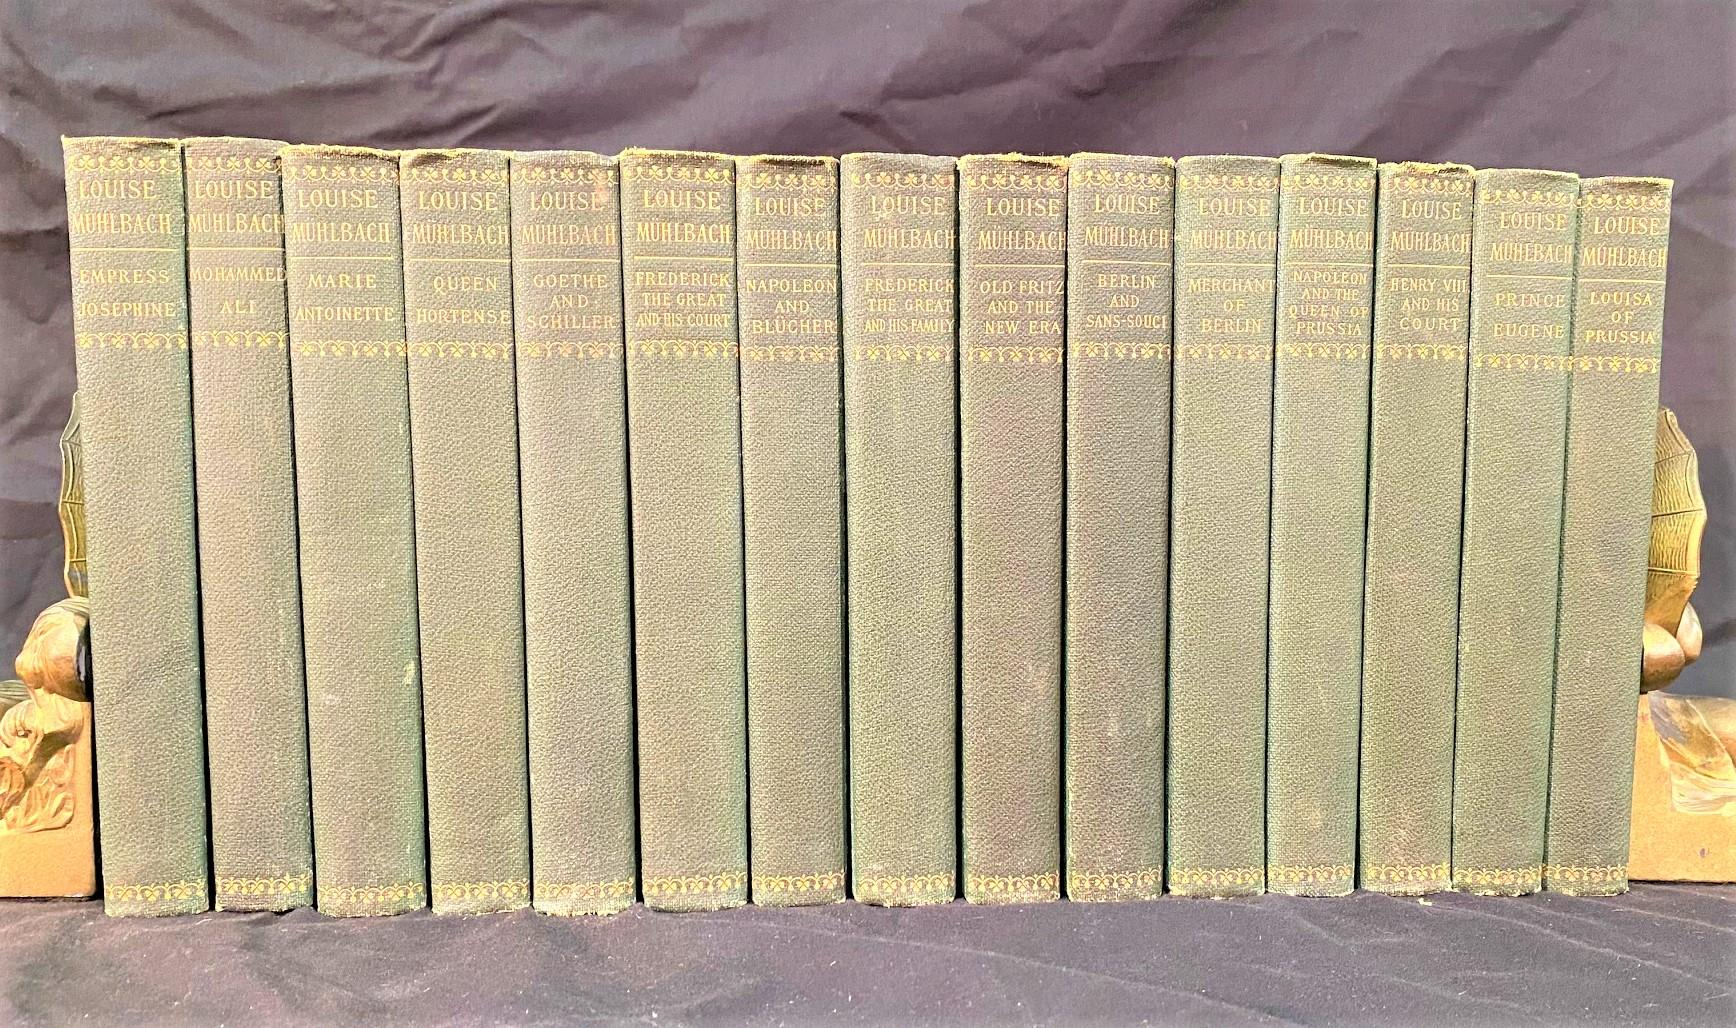 THE WORKS OF LOUISE MUHLBACH - 15 VOLUMES - 1902